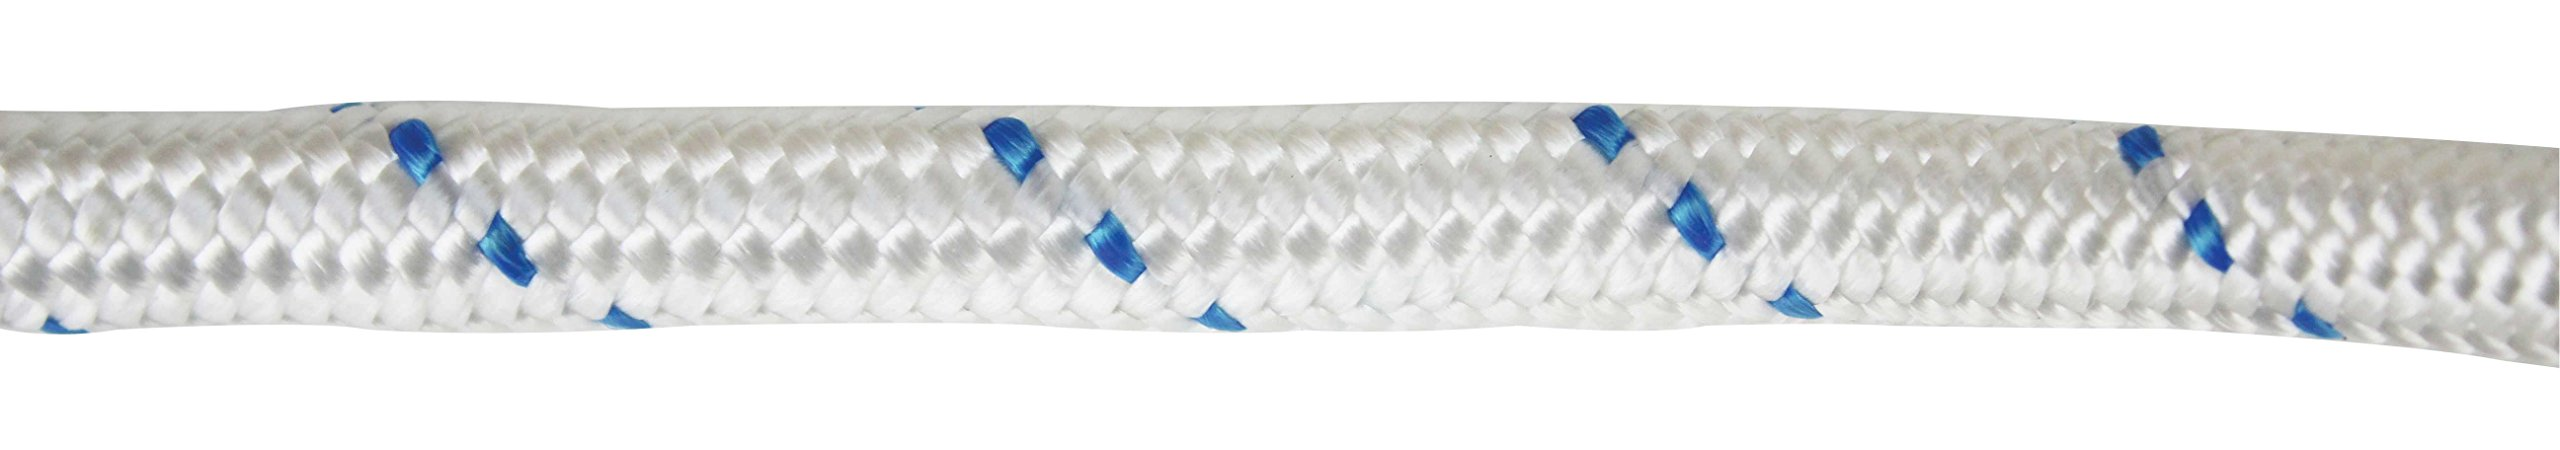 Extreme Max 3006.2547 White w/Blue Tracer 3/4'' x 600' BoatTector Double Braid Nylon Anchor Line with Thimble by Extreme Max (Image #3)